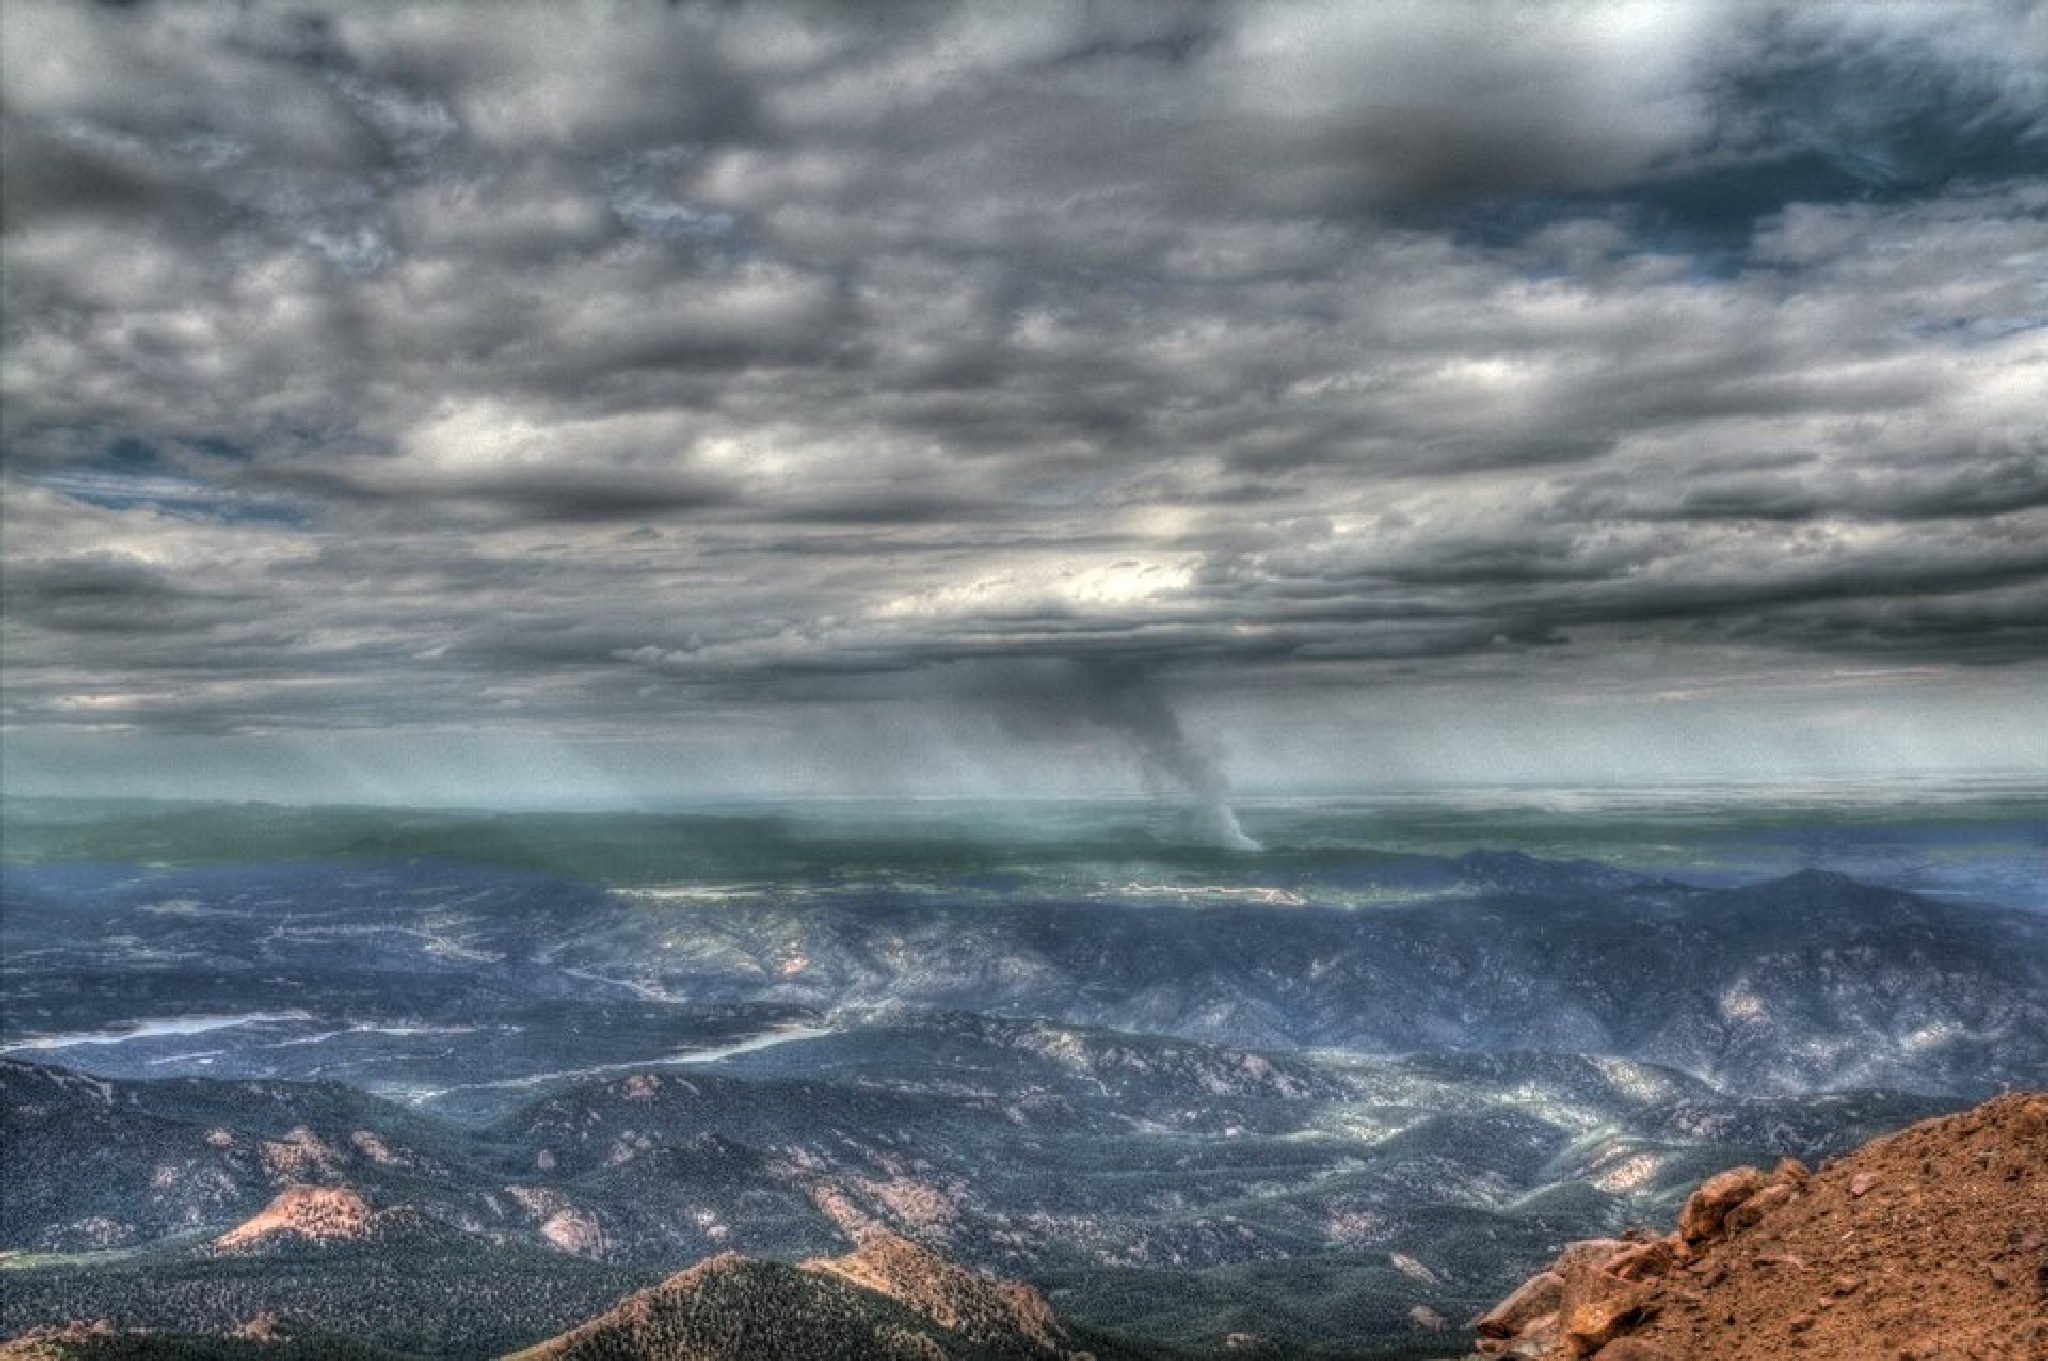 Fire in the distance @ Pikes Peak by tdurard